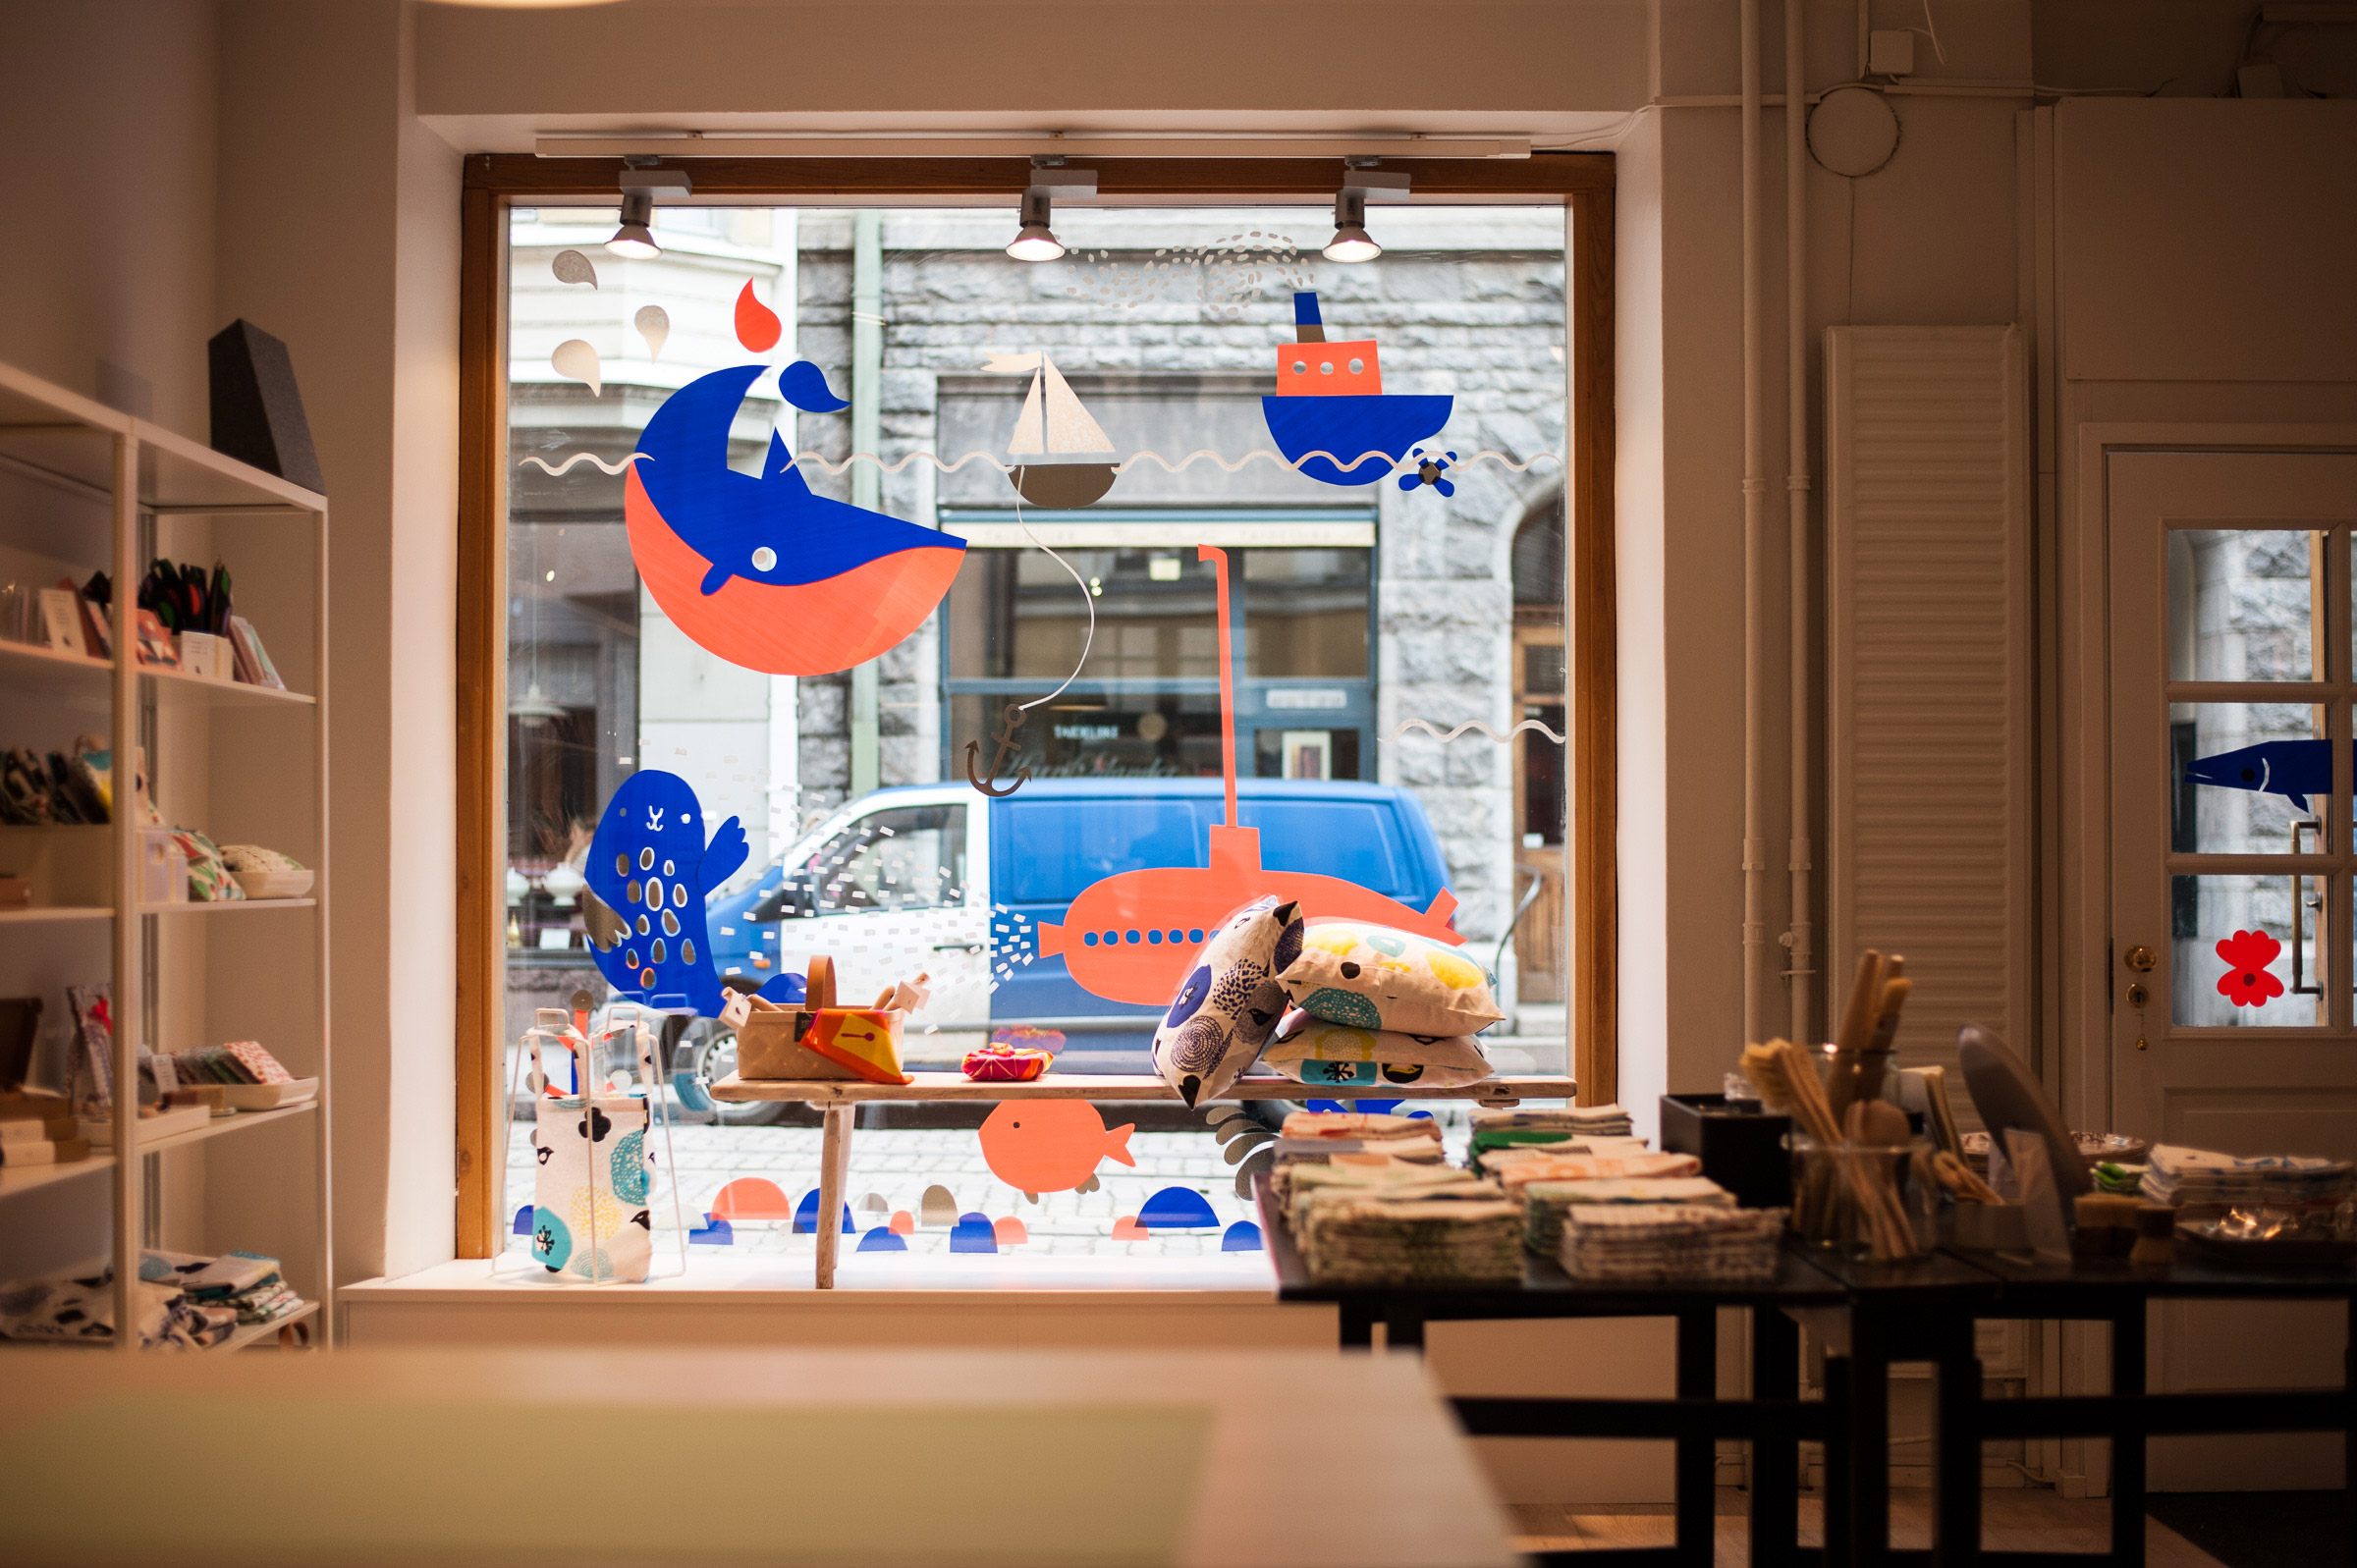 Window display by Krista Karki, Leena Kisonen and Anna Vuorinen for Kauniste Shop in Helsinki, Finland @enviromeant